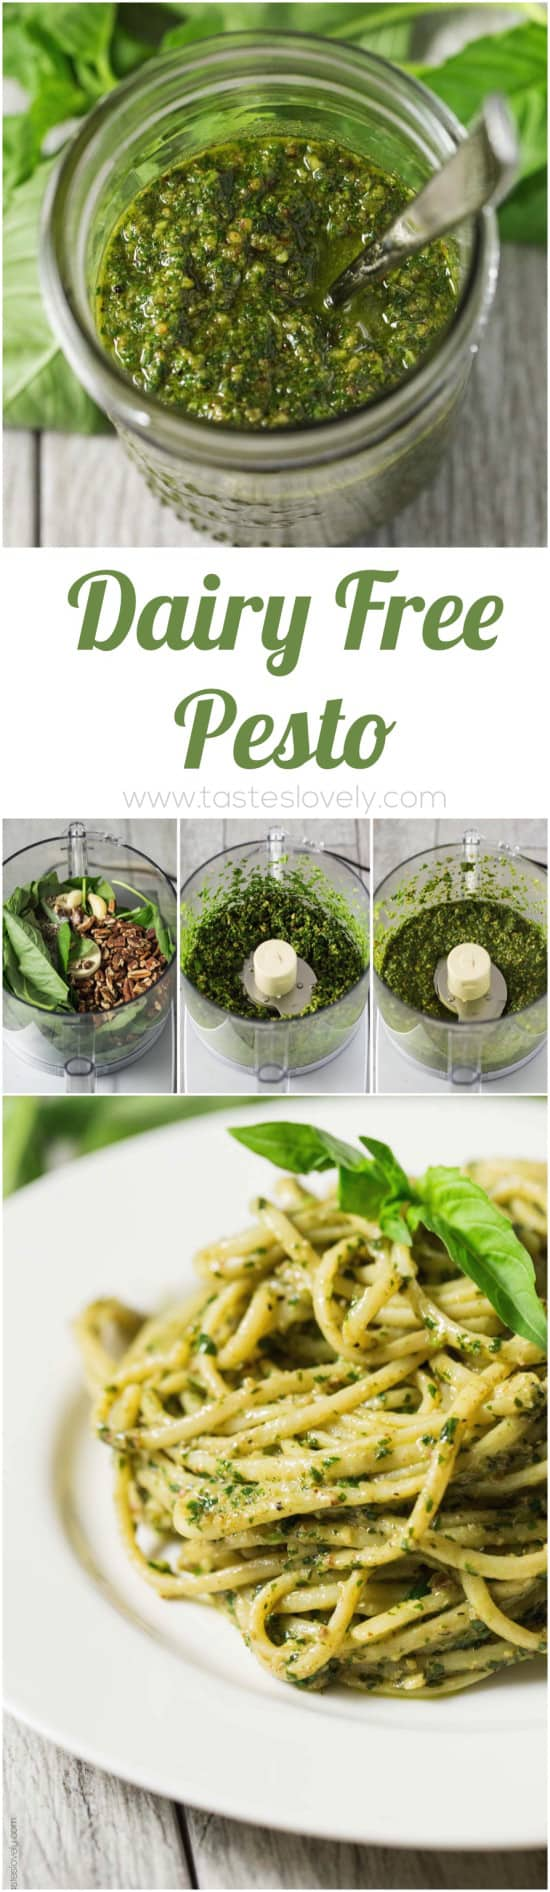 Dairy Free Pesto that is Paleo, Whole30 and Vegan!